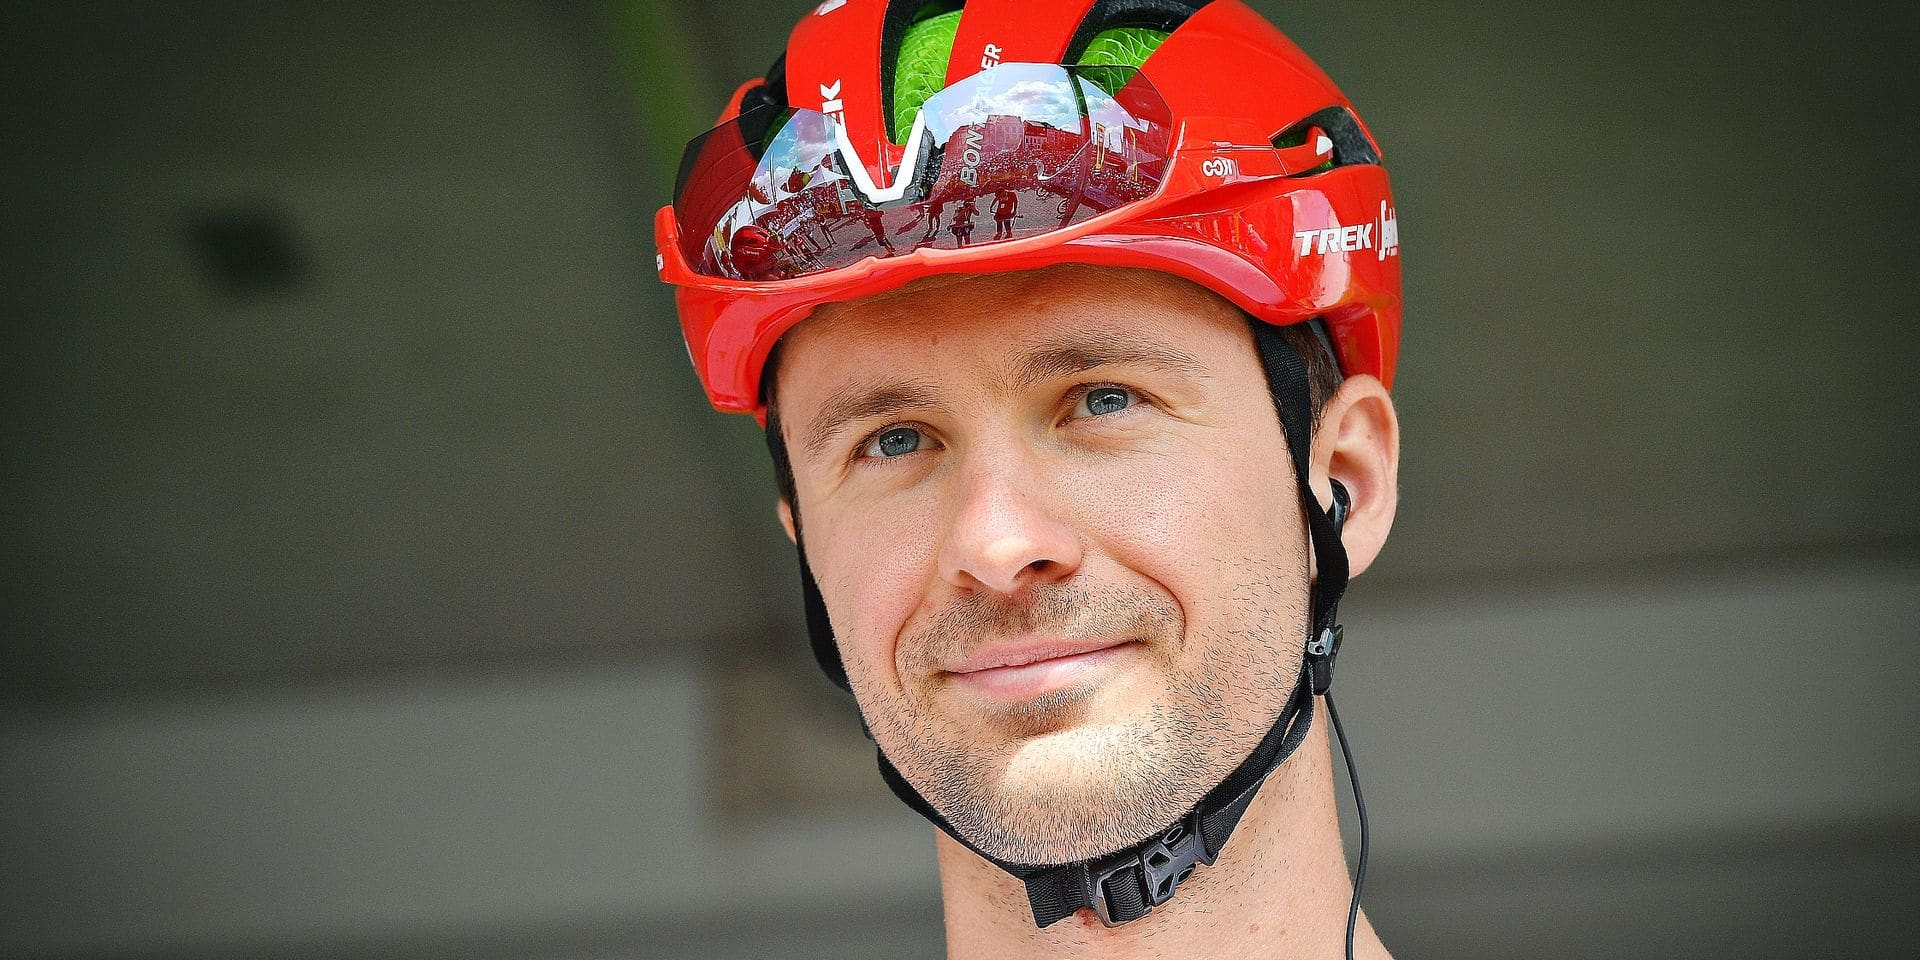 Belgian Edward Theuns of Trek-Segafredo pictured at the start of the first stage of the Binkcbank Tour cycling race, 167,2km km from Beveren (Belgium) to Hulst, the Netherlands, Monday 12 August 2019. BELGA PHOTO DAVID STOCKMAN